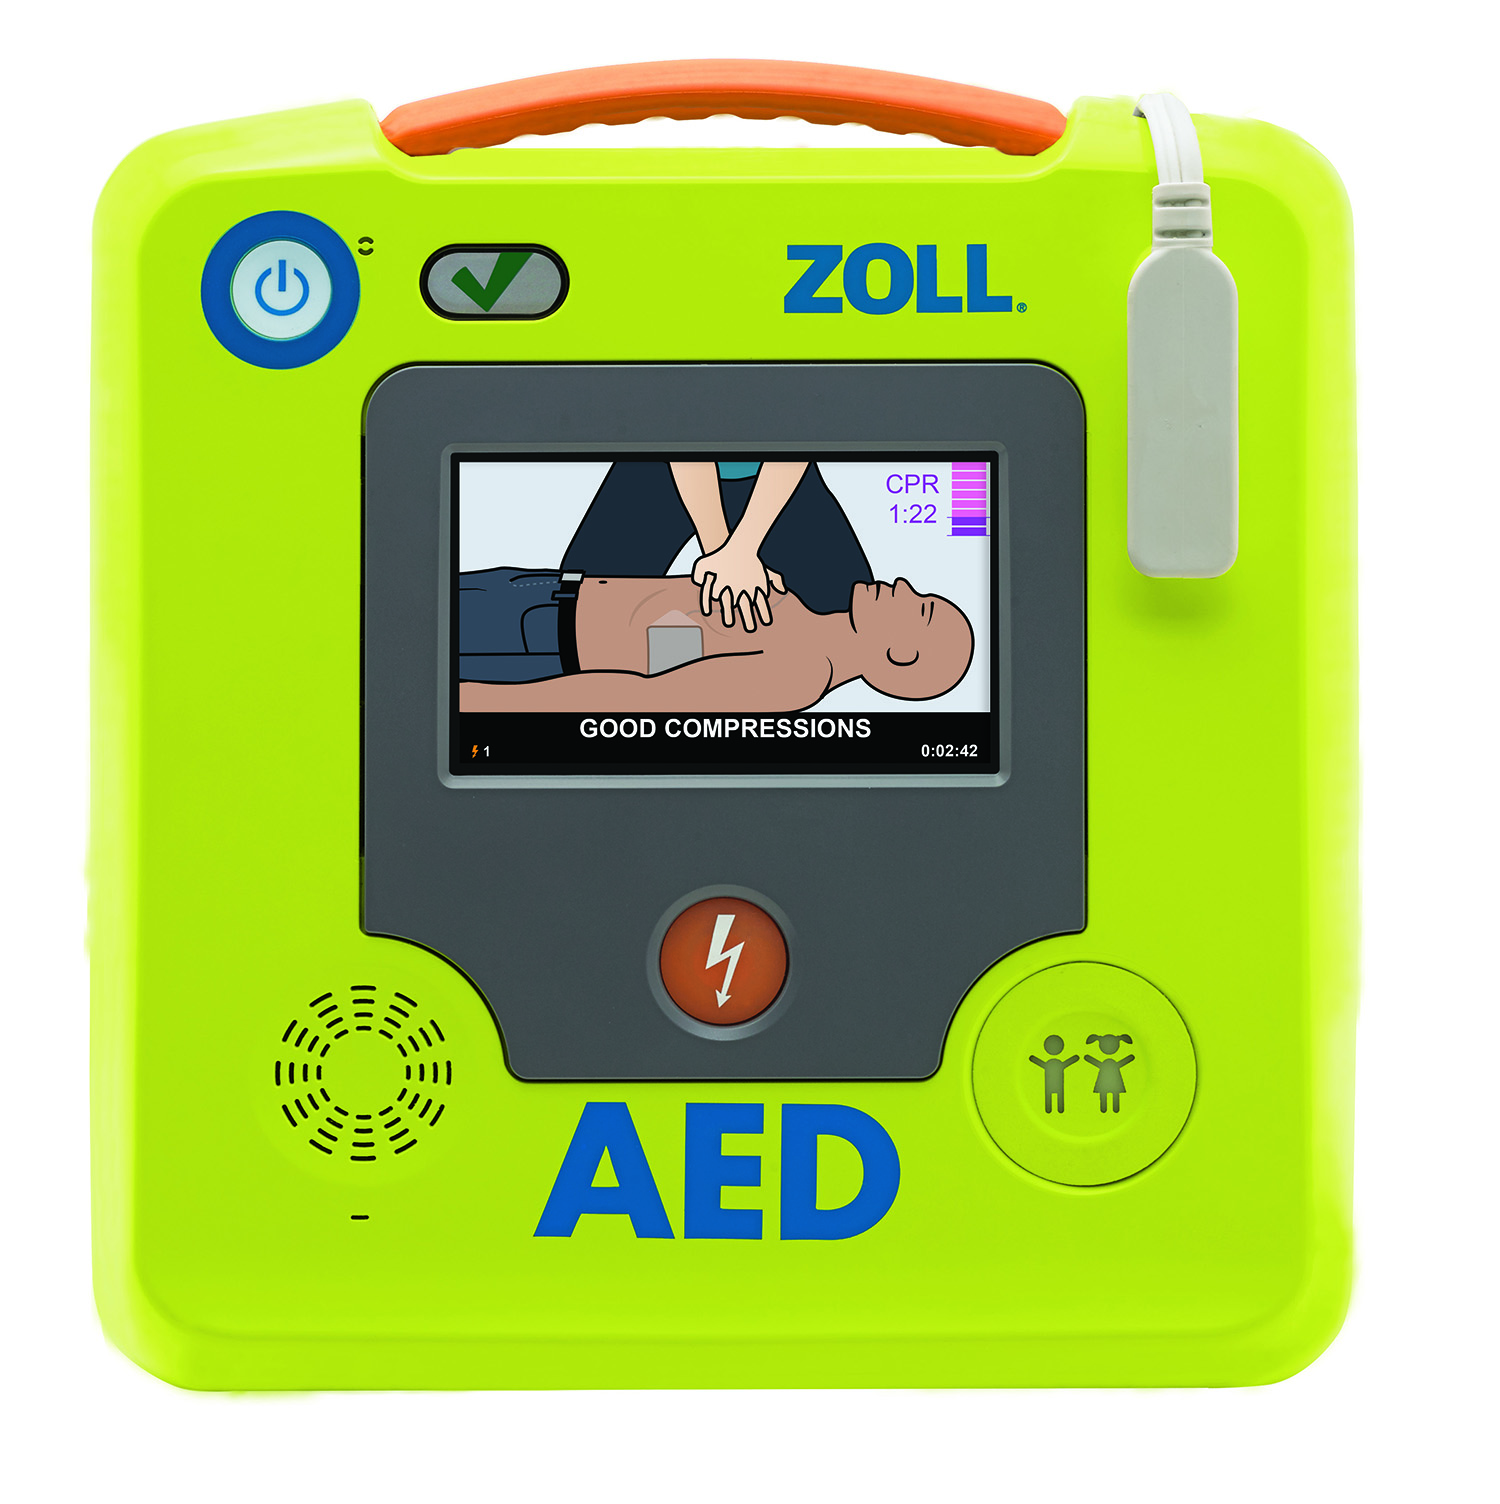 ZOLL AED 3-image